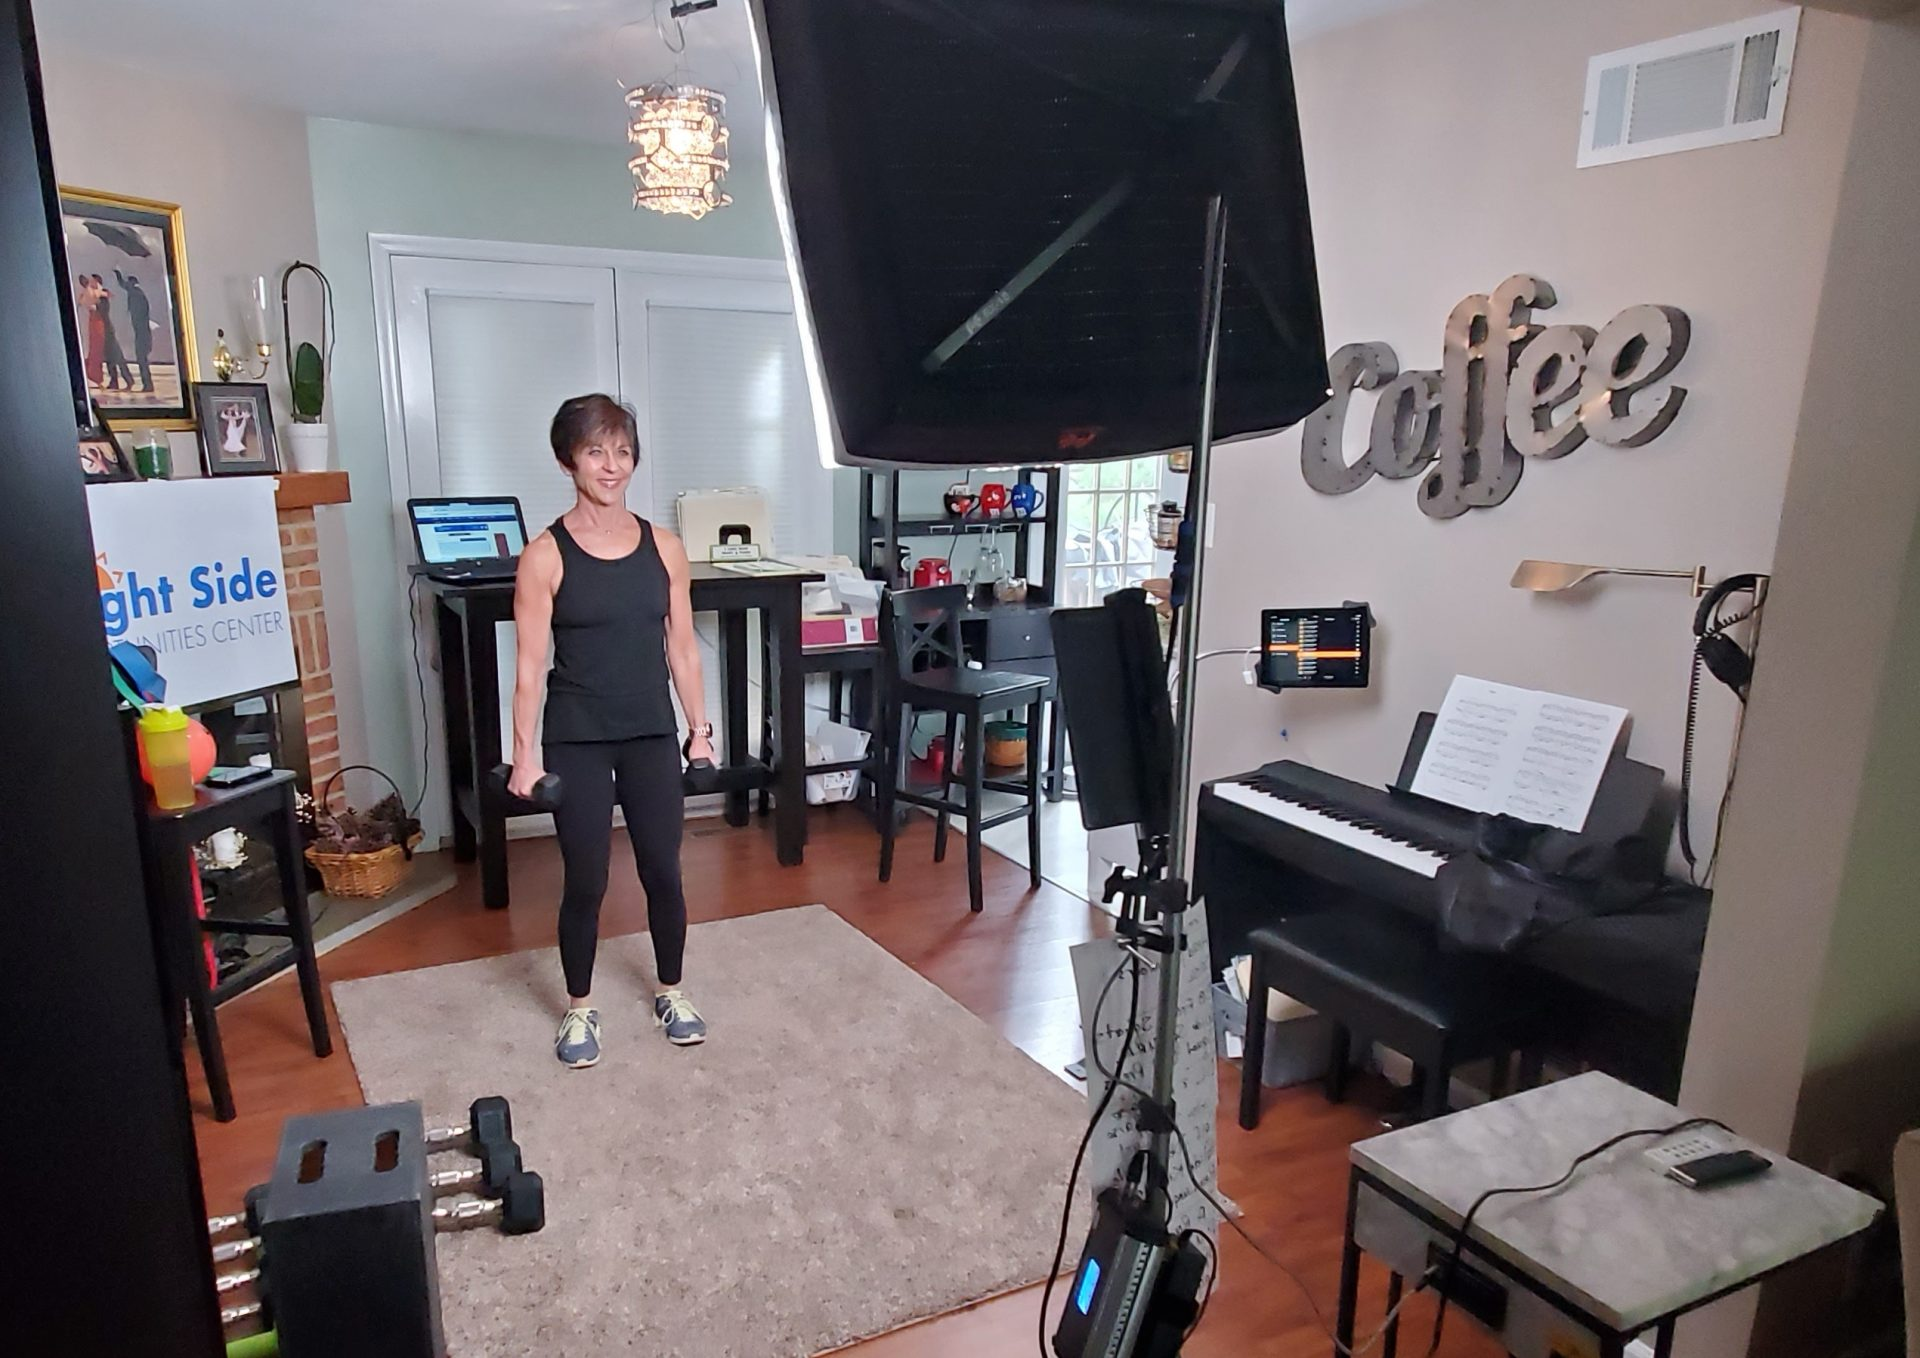 Sally Winchell, wellness director at Bright Side Opportunities Center, conducts a Facebook Live fitness class on May 5, 2020. (Source: George Winchell)